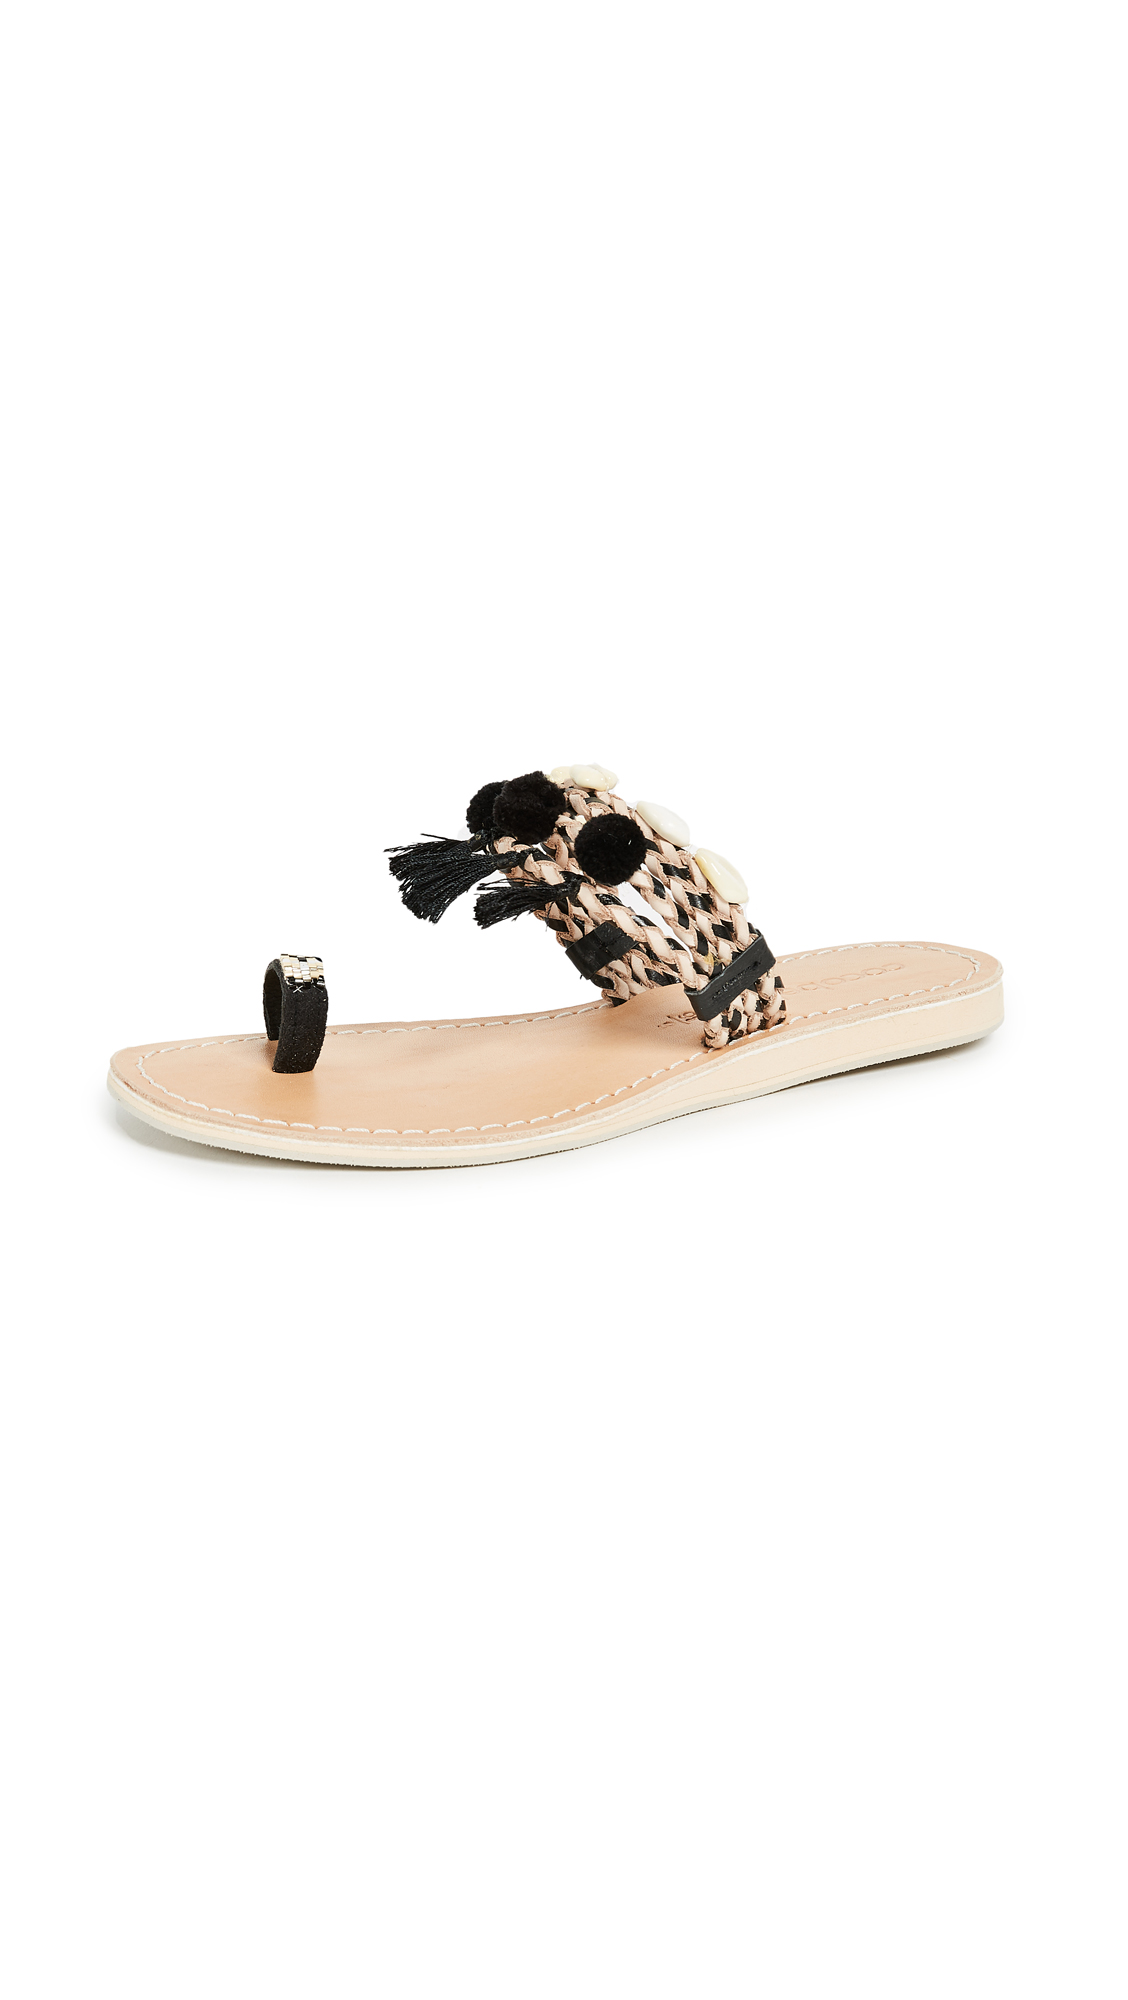 Cocobelle Kopi Toe Ring Sandals - Black